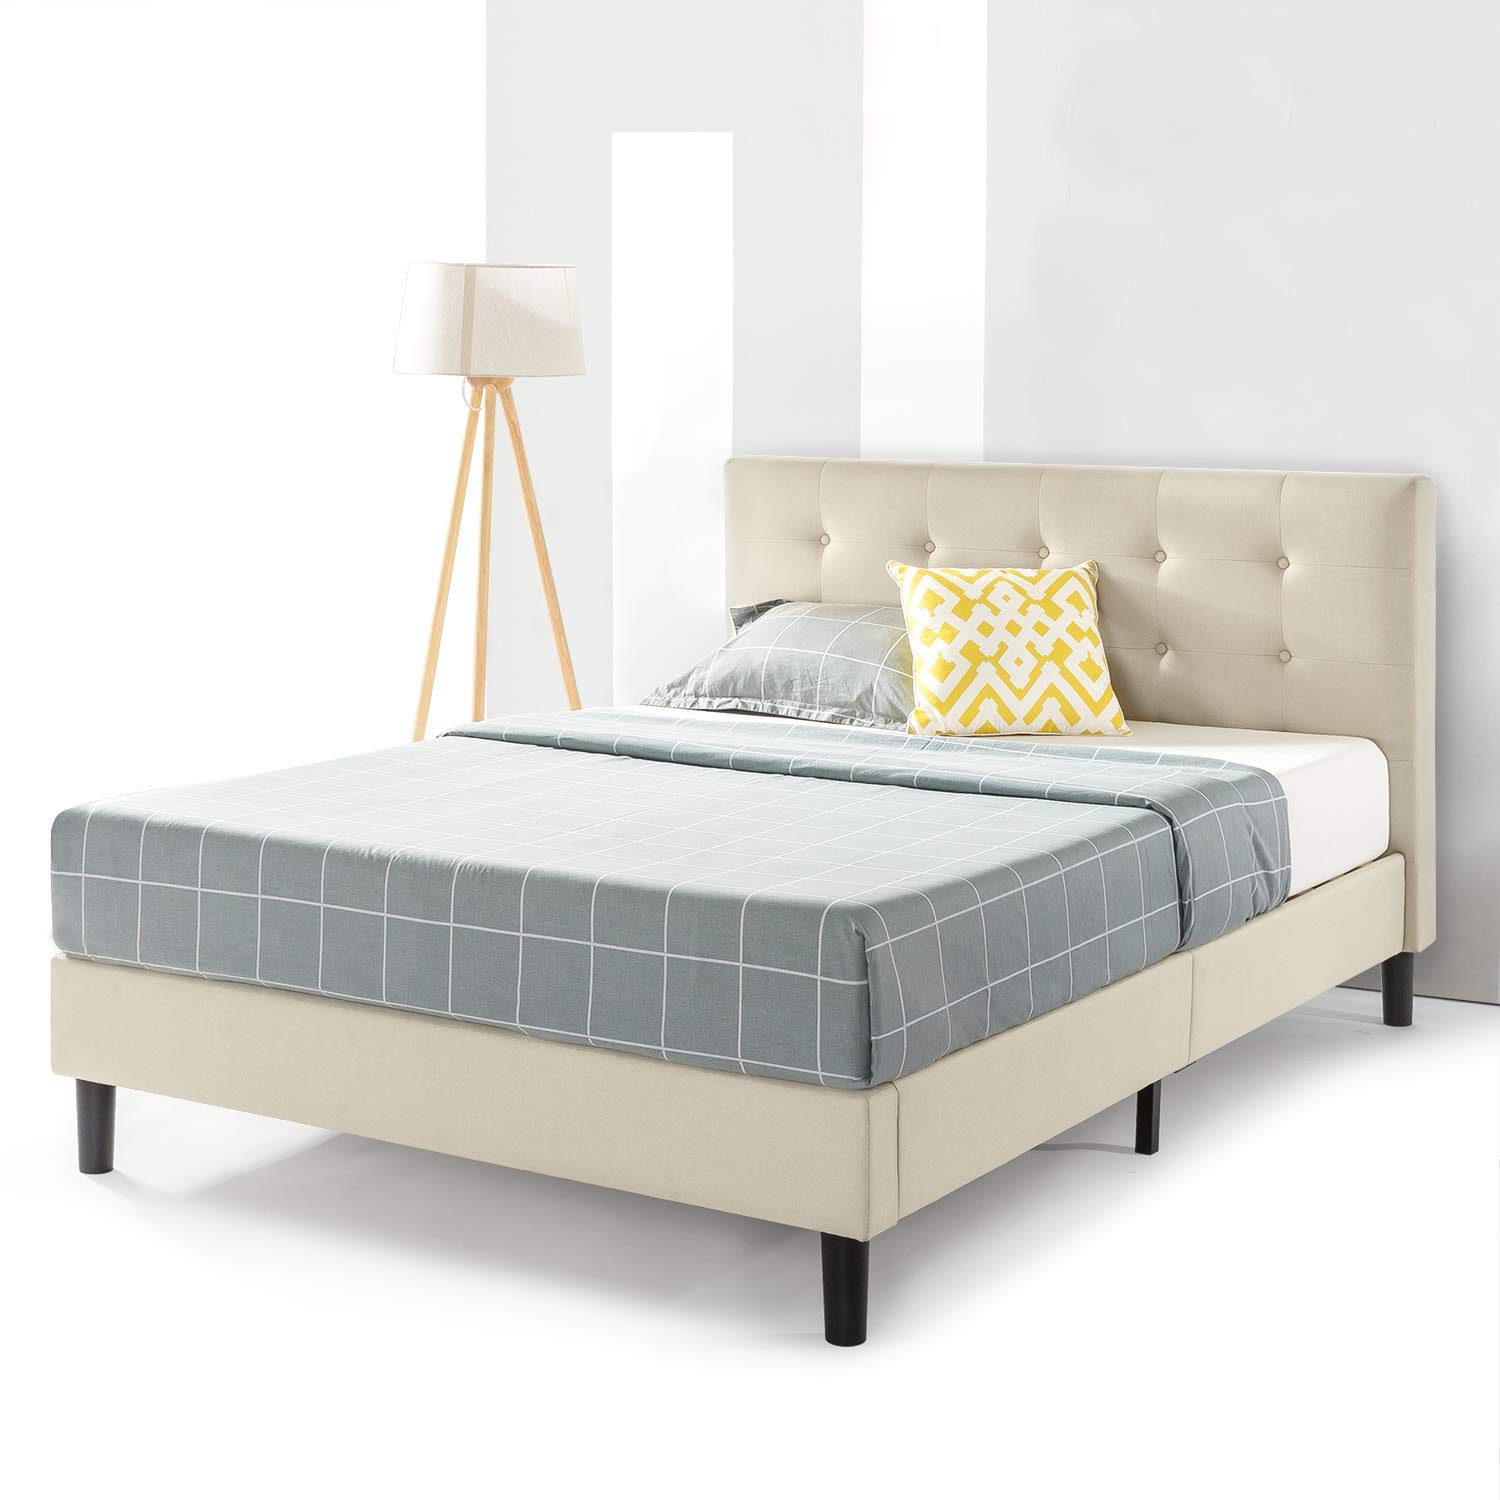 Cheap Iron Queen Size Beds Find Iron Queen Size Beds